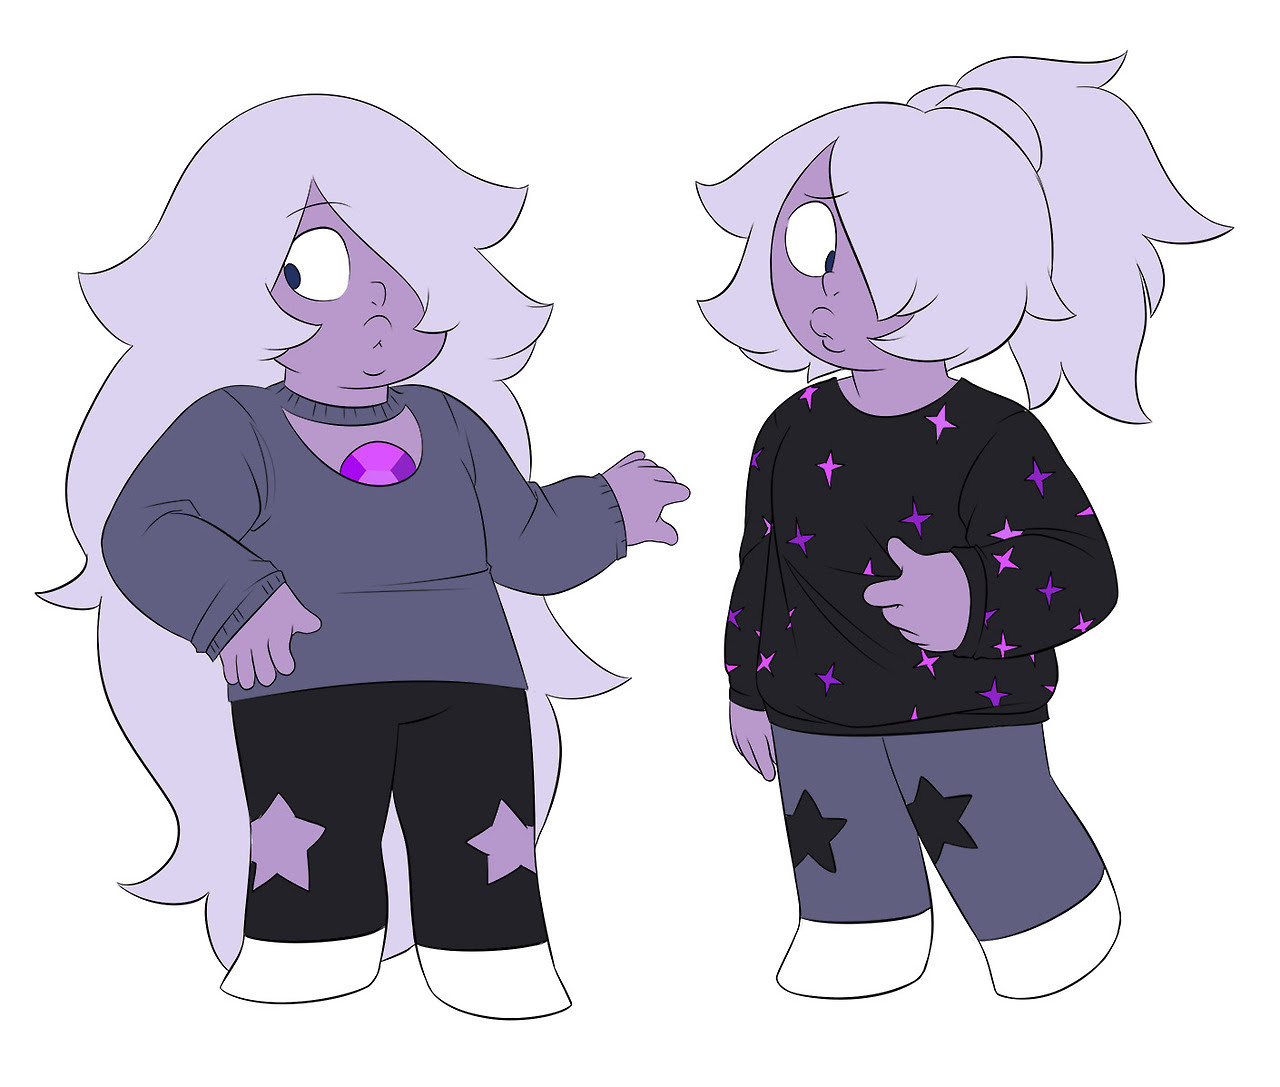 Alternate universe where everything is the same except Amethyst wears fashionable sweaters